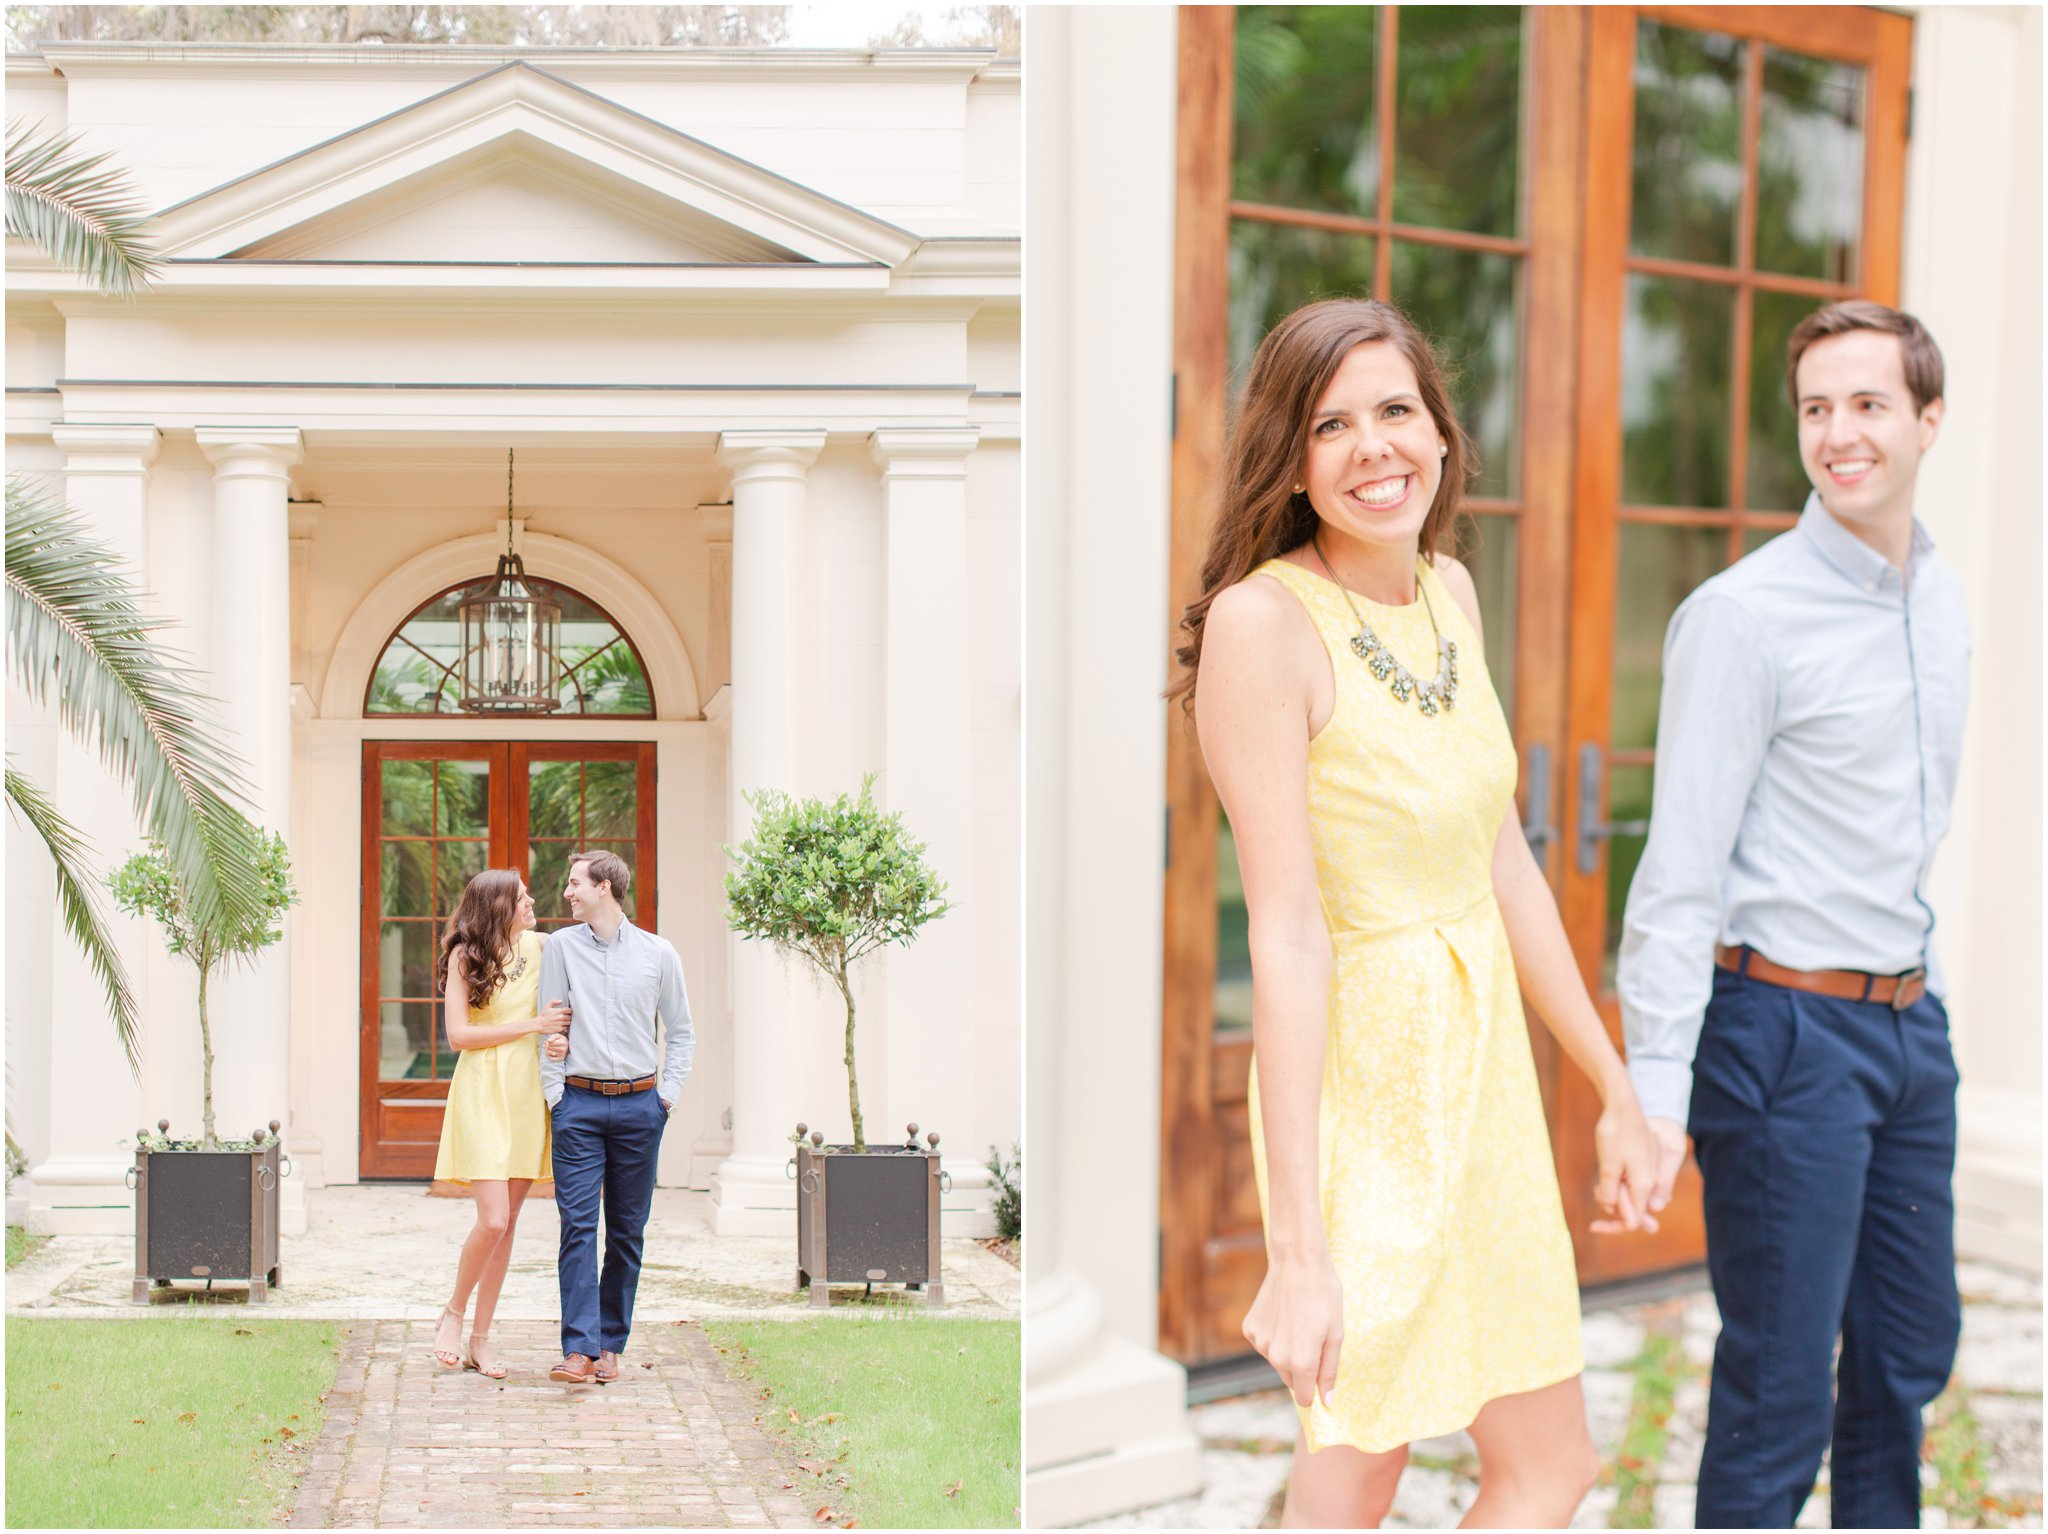 Savannah engagement session at Delta Plantation by Christa Rene Photography